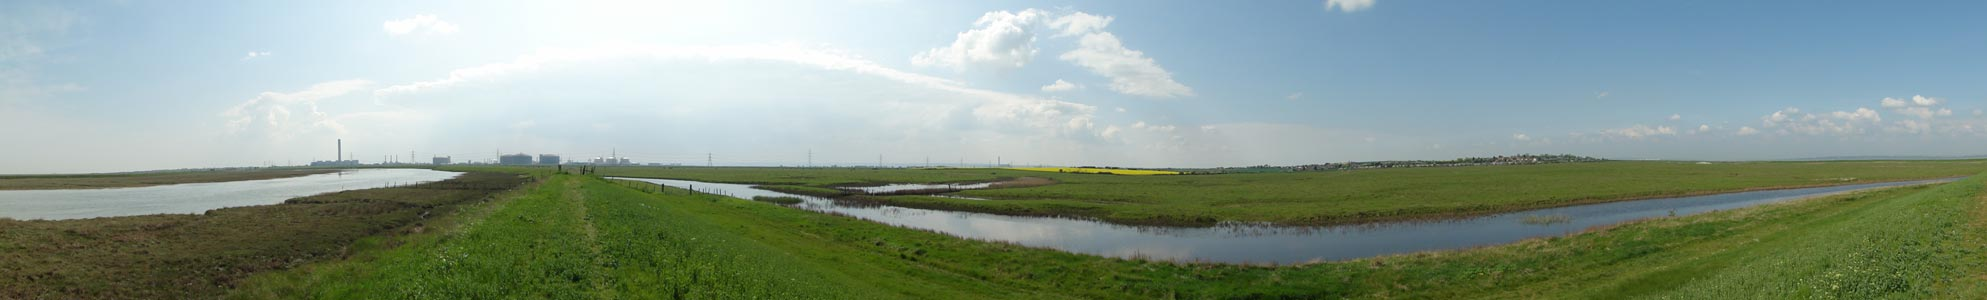 Panoramic view of the Allhallows Marshes facing Grain